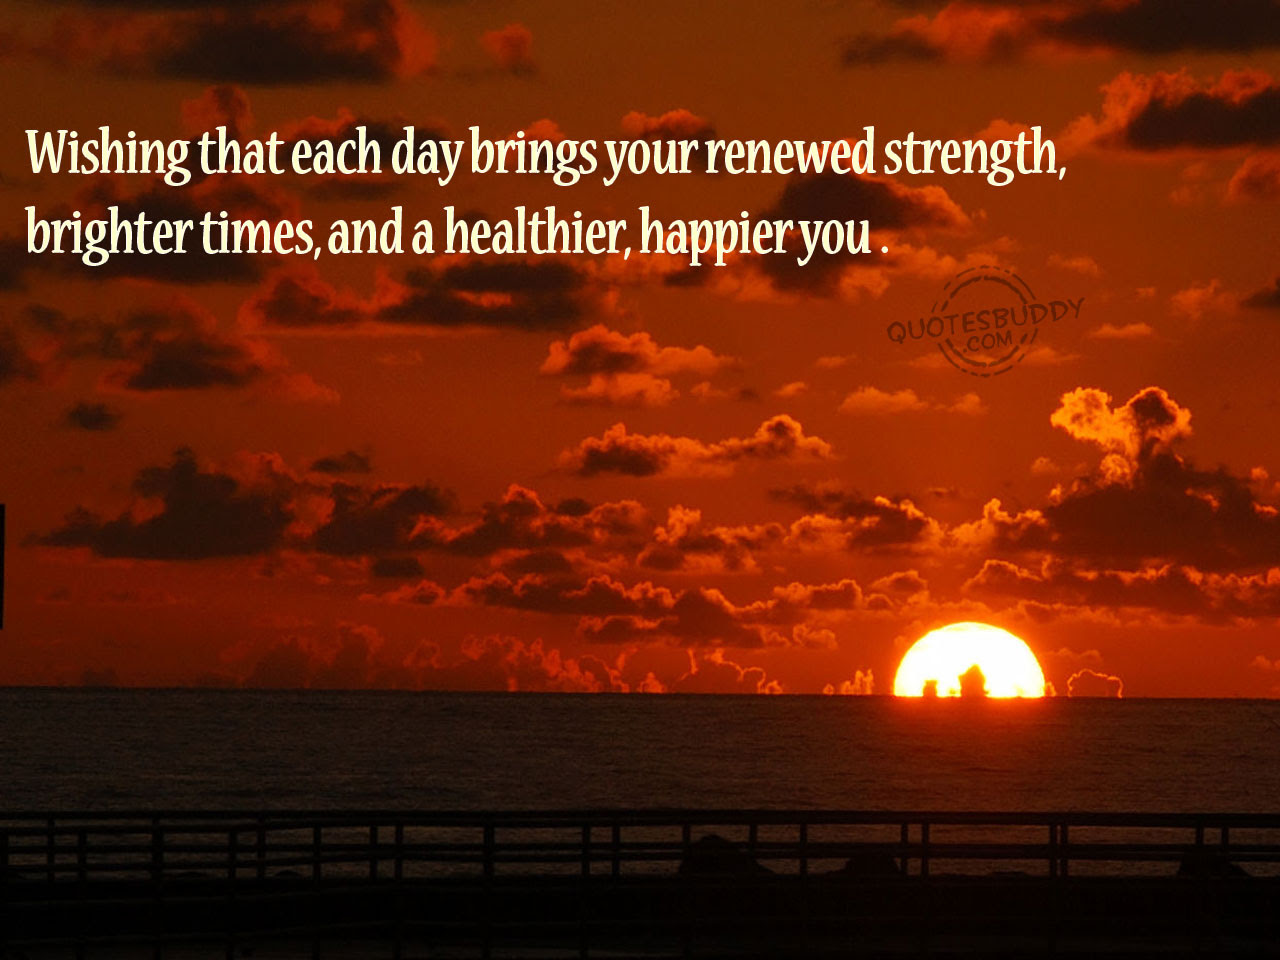 Wishing that Each Day Brings Your Renewed Strength ...